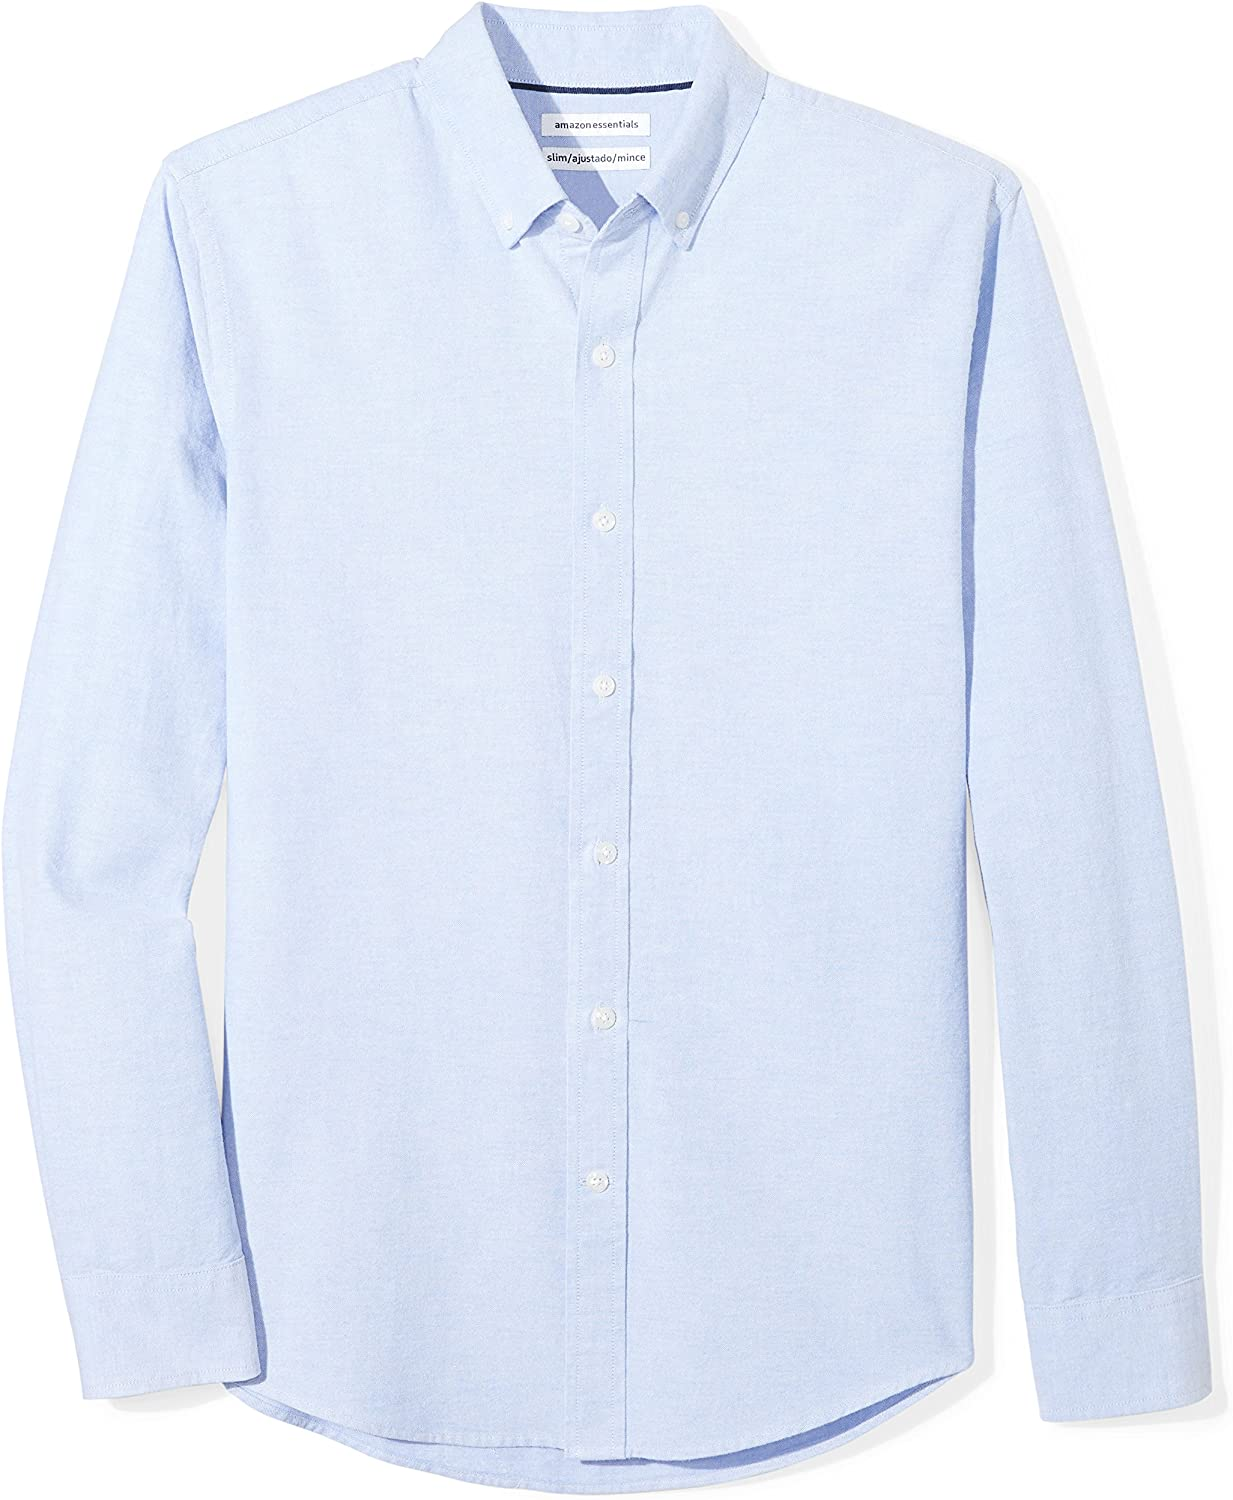 Essentials Men's Slim-fit Long-Sleeve Solid Oxford Shirt: Clothing